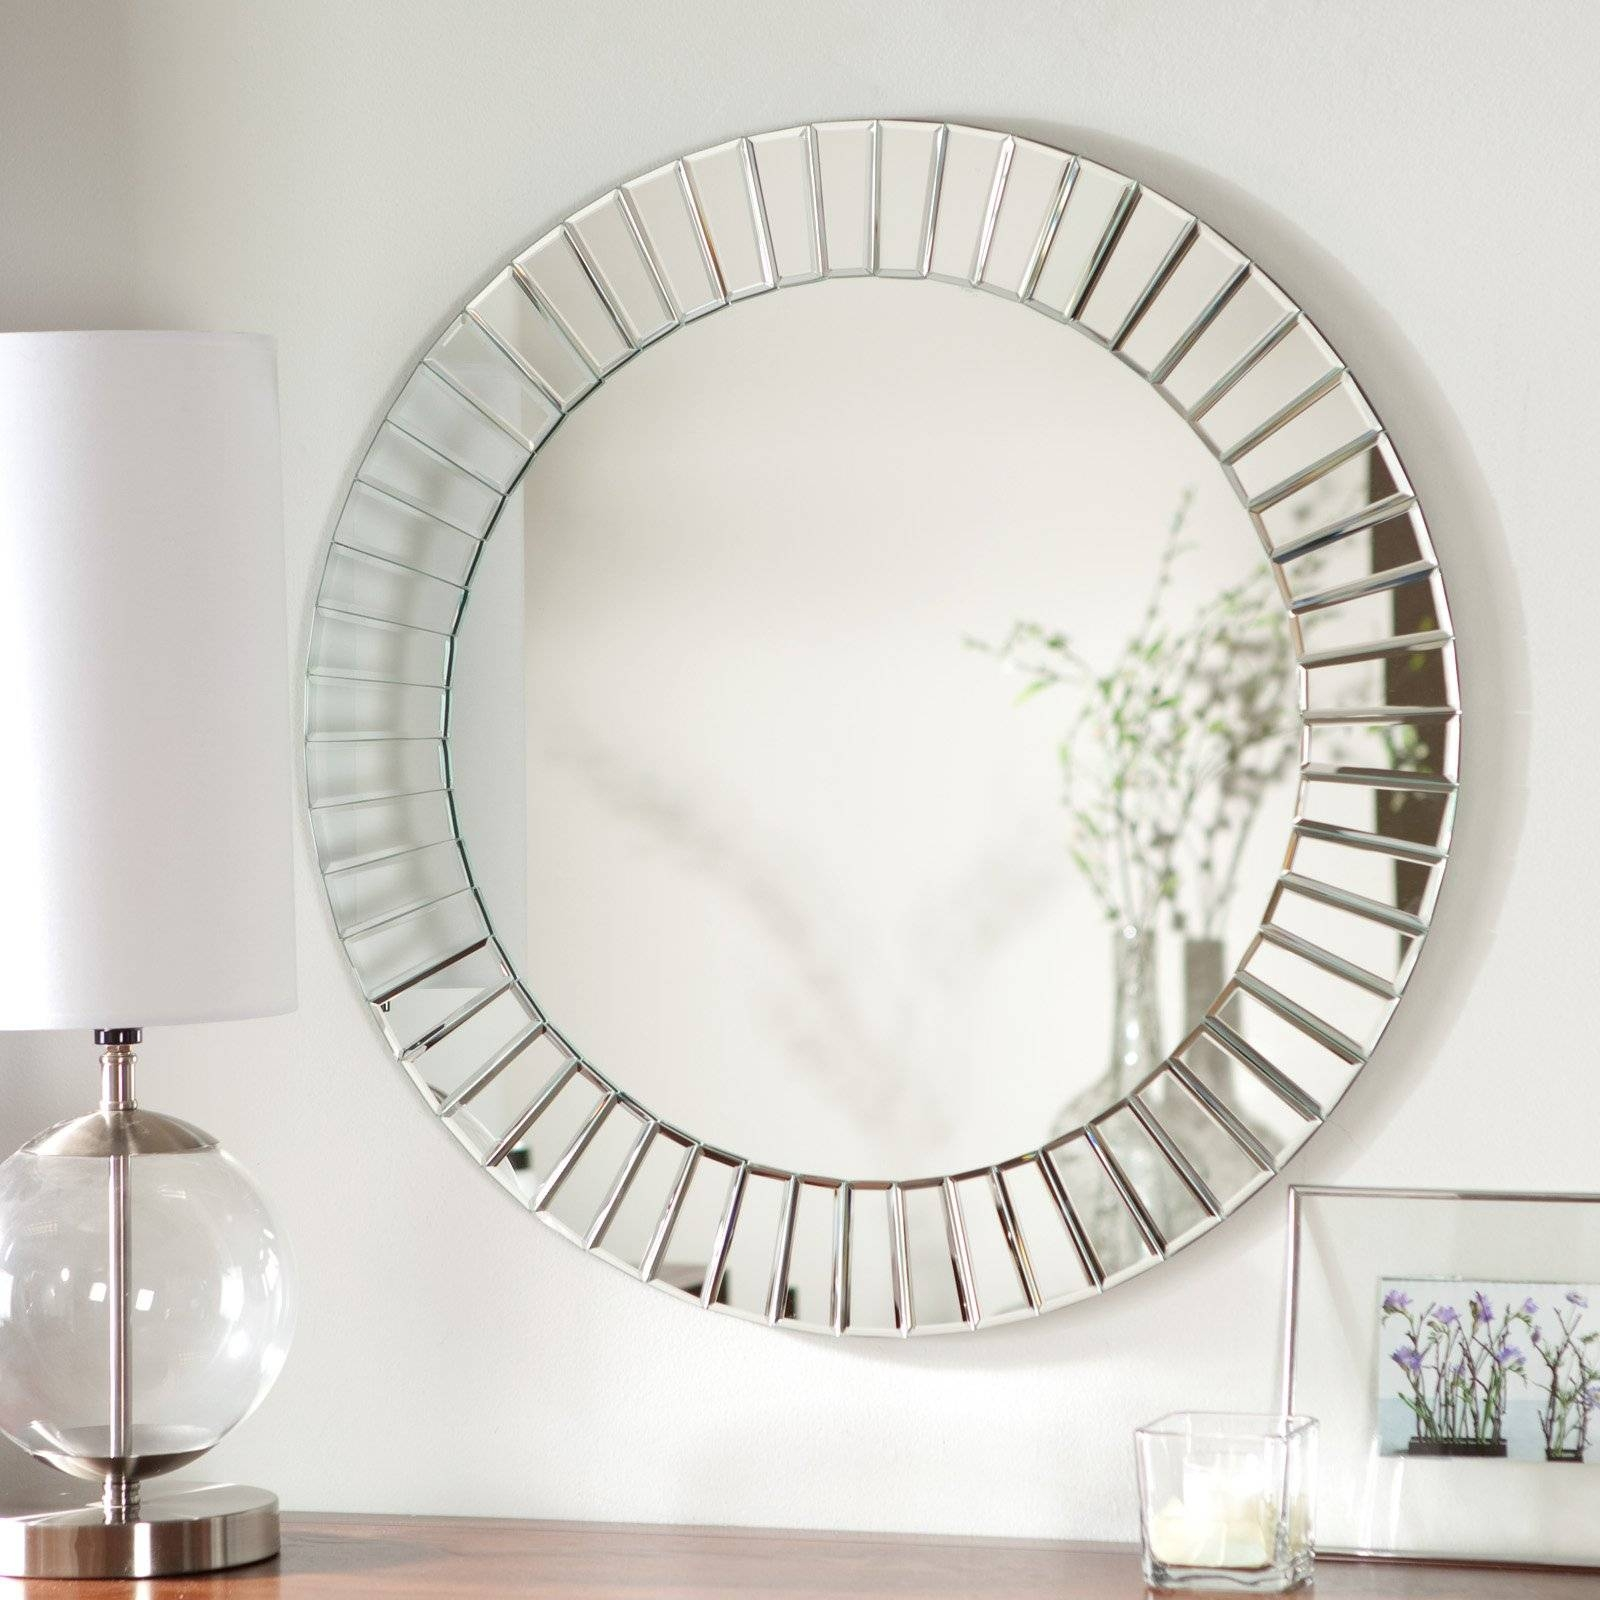 The Rich & Frameless Mirrors - Room Refresh | Hayneedle intended for Frameless Arched Mirrors (Image 23 of 25)